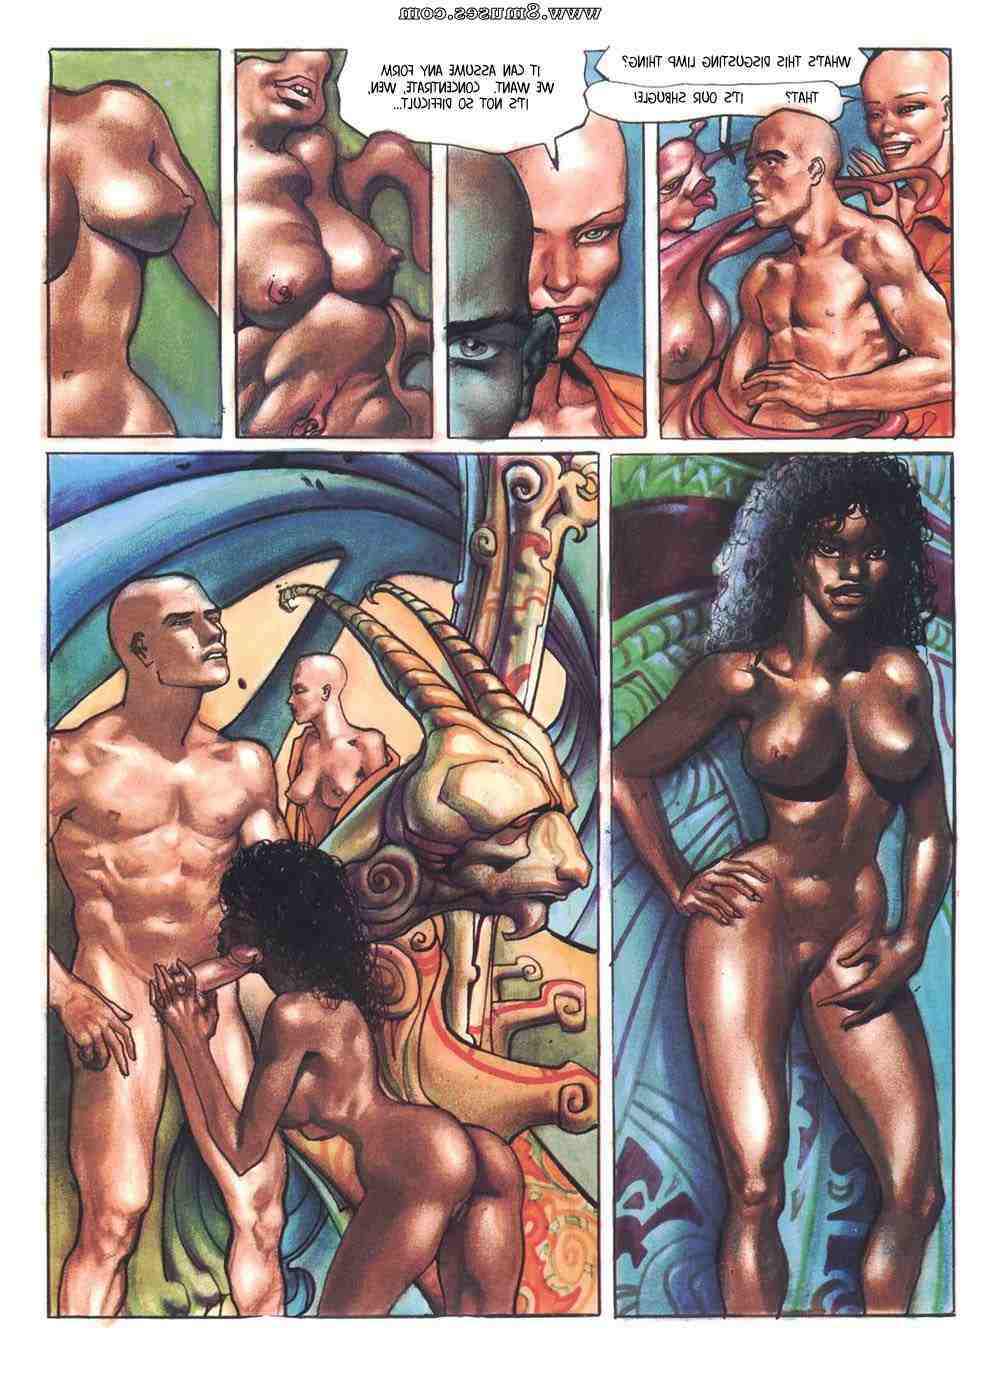 Various-Authors/Starzo/Mike-Mercury Mike_Mercury__8muses_-_Sex_and_Porn_Comics_37.jpg